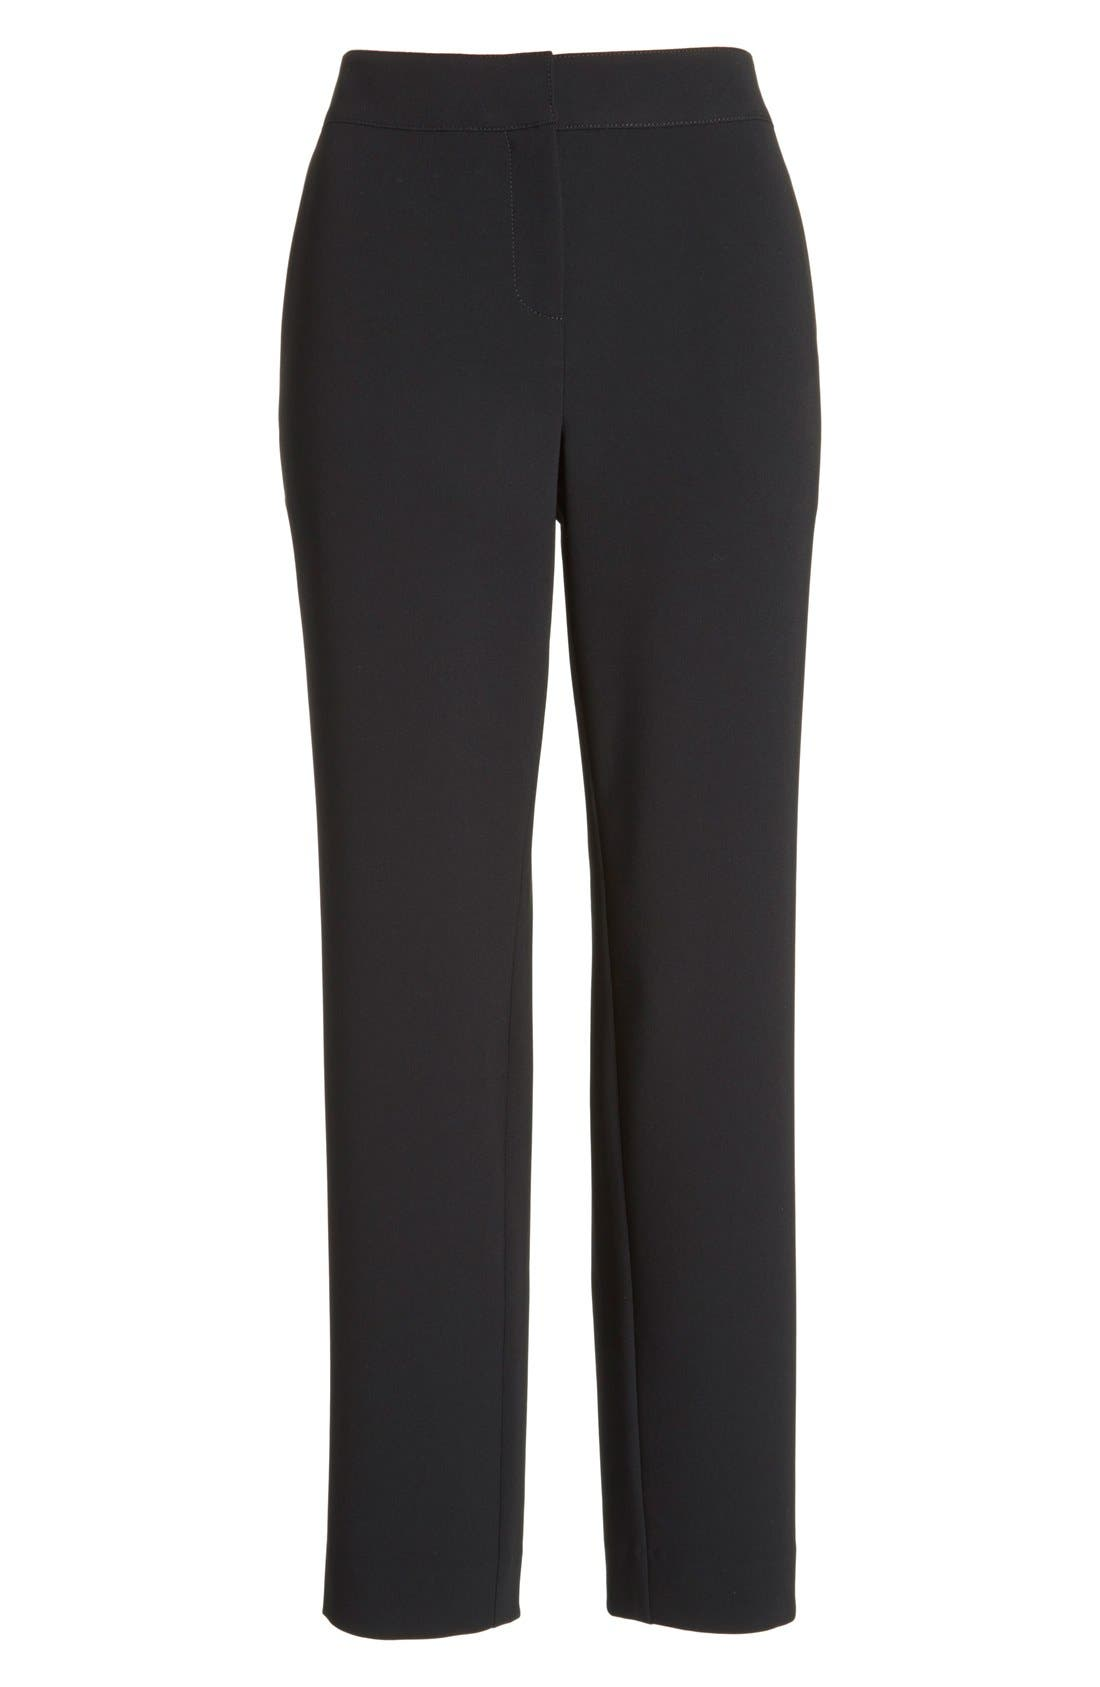 Alternate Image 4  - St. John Collection 'Emma' Crop Crepe Marocain Pants